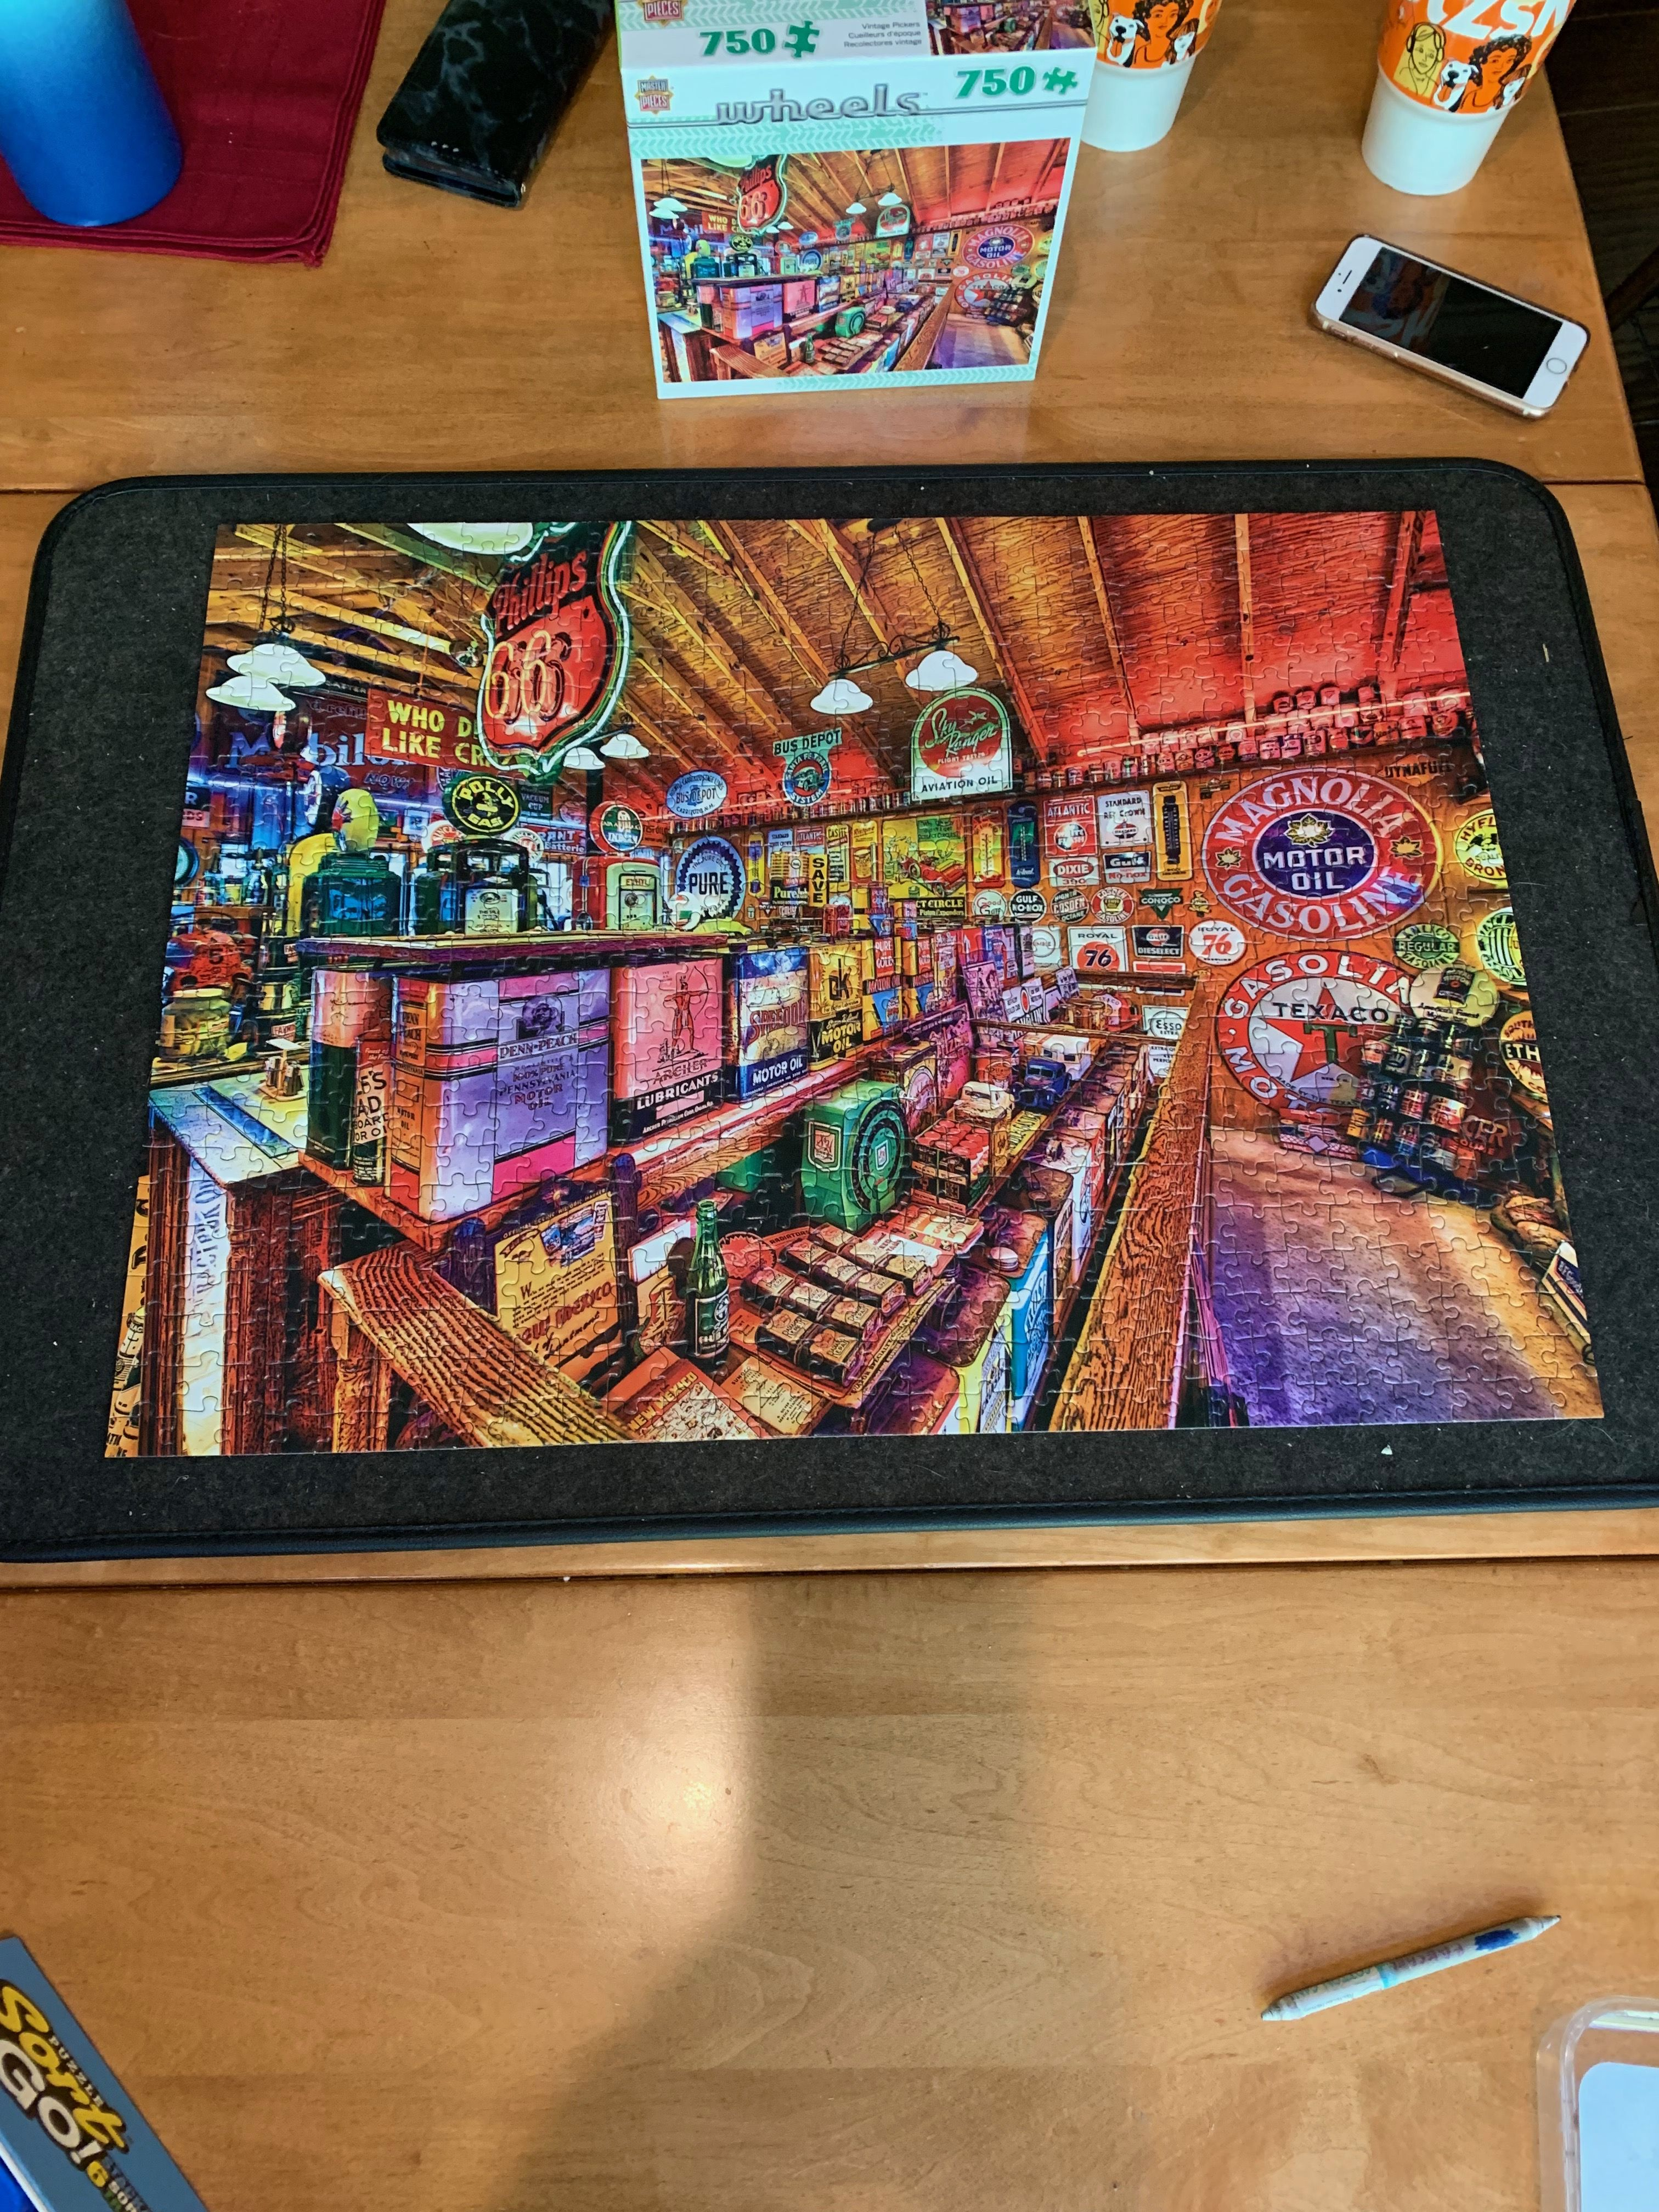 Pin by Virginia Cook on Puzzles Puzzle, Games, Monopoly